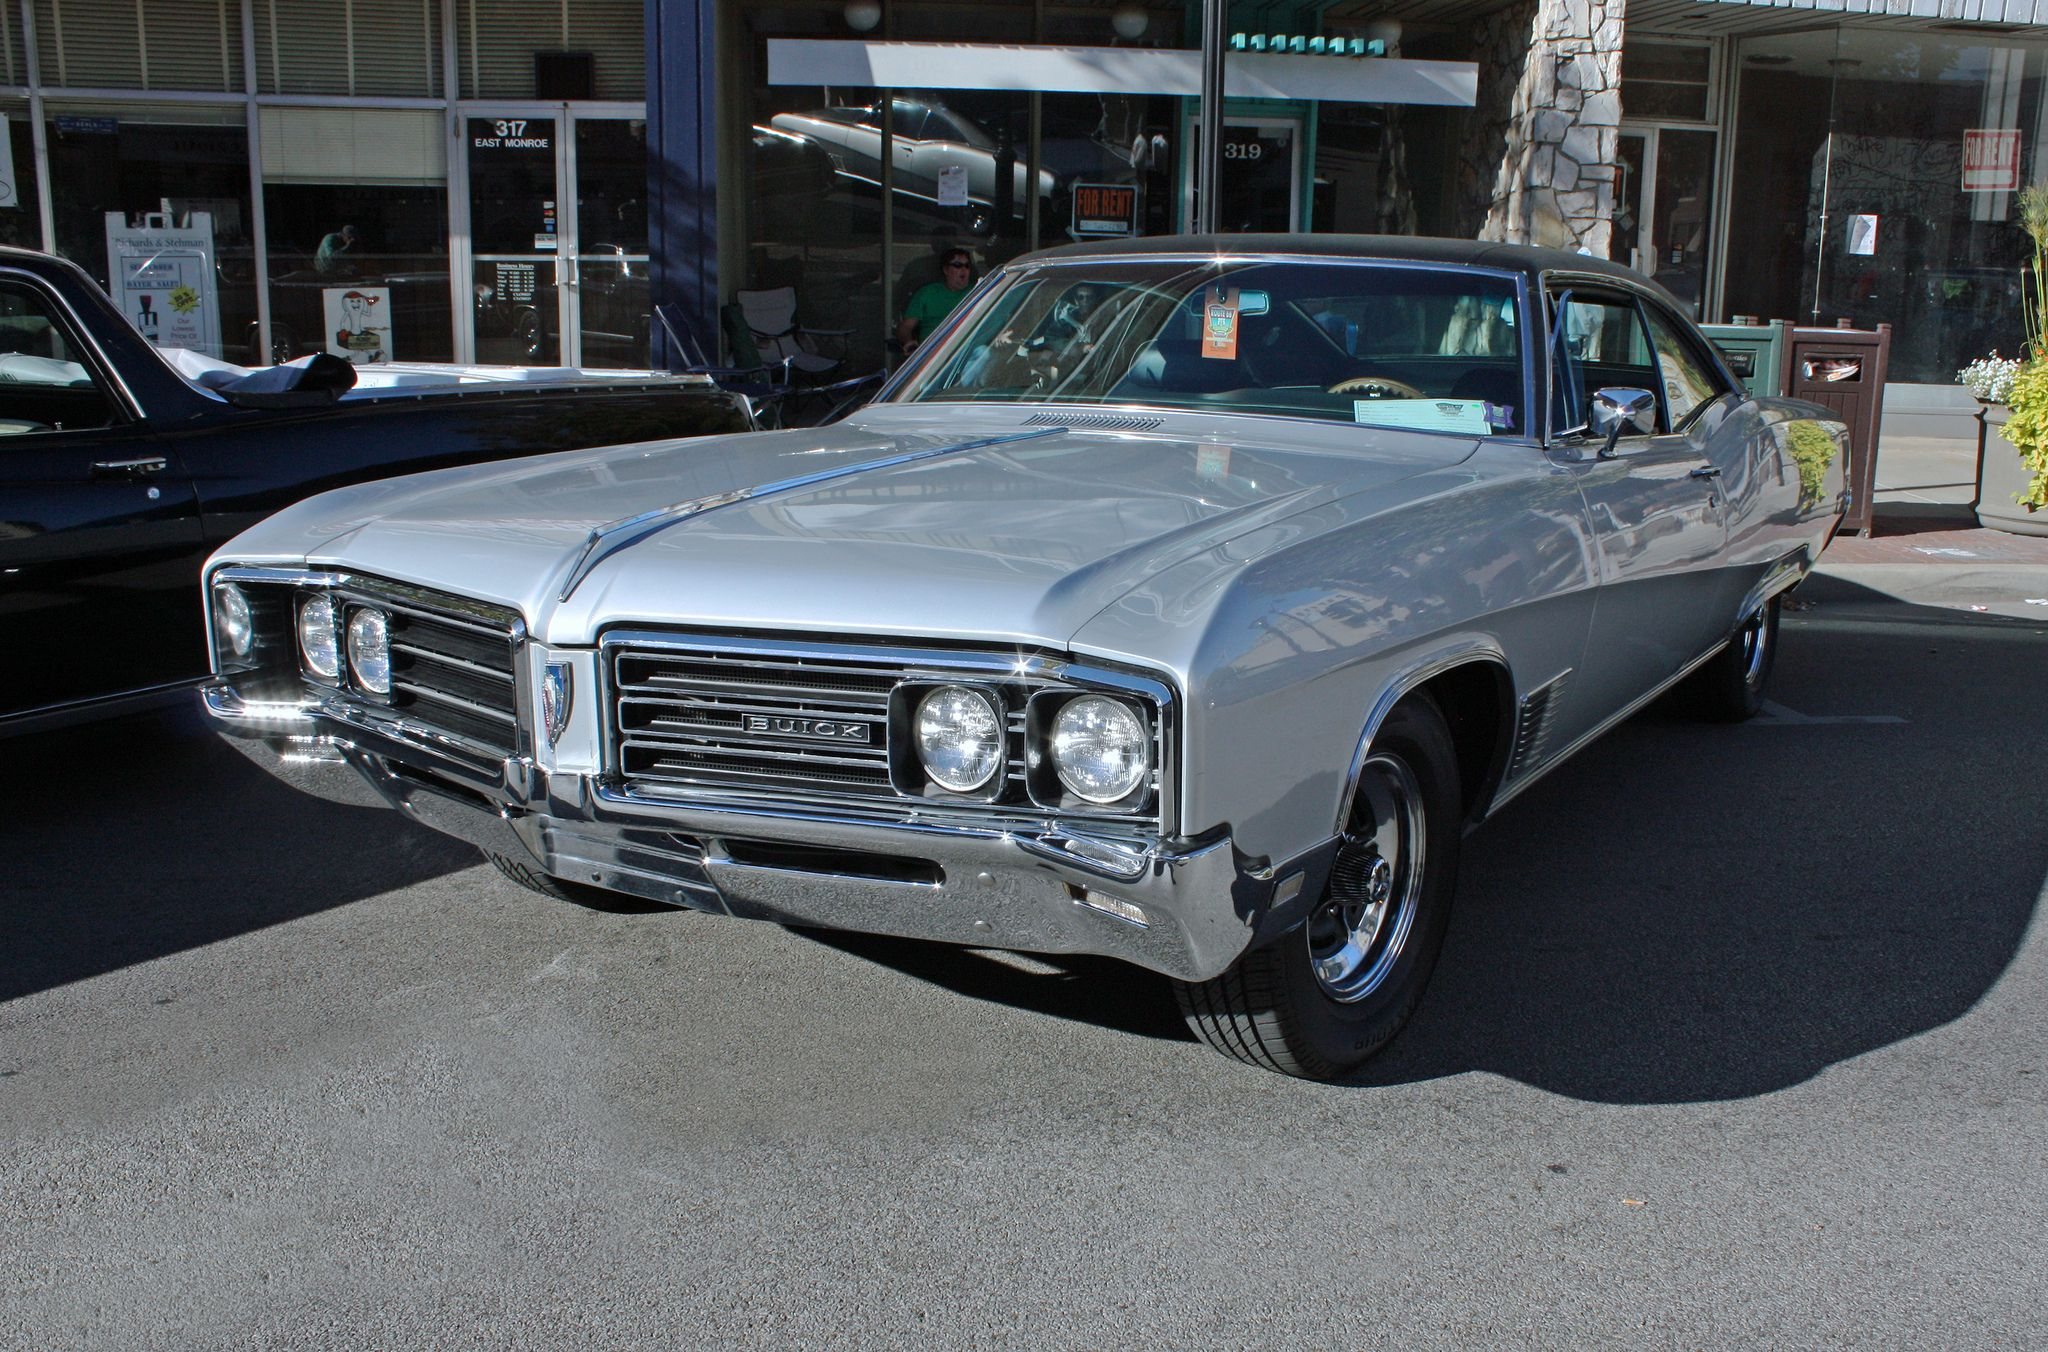 1968 Buick WILDCAT Coupe. My very first car. Mines was a 4dr, gray ...